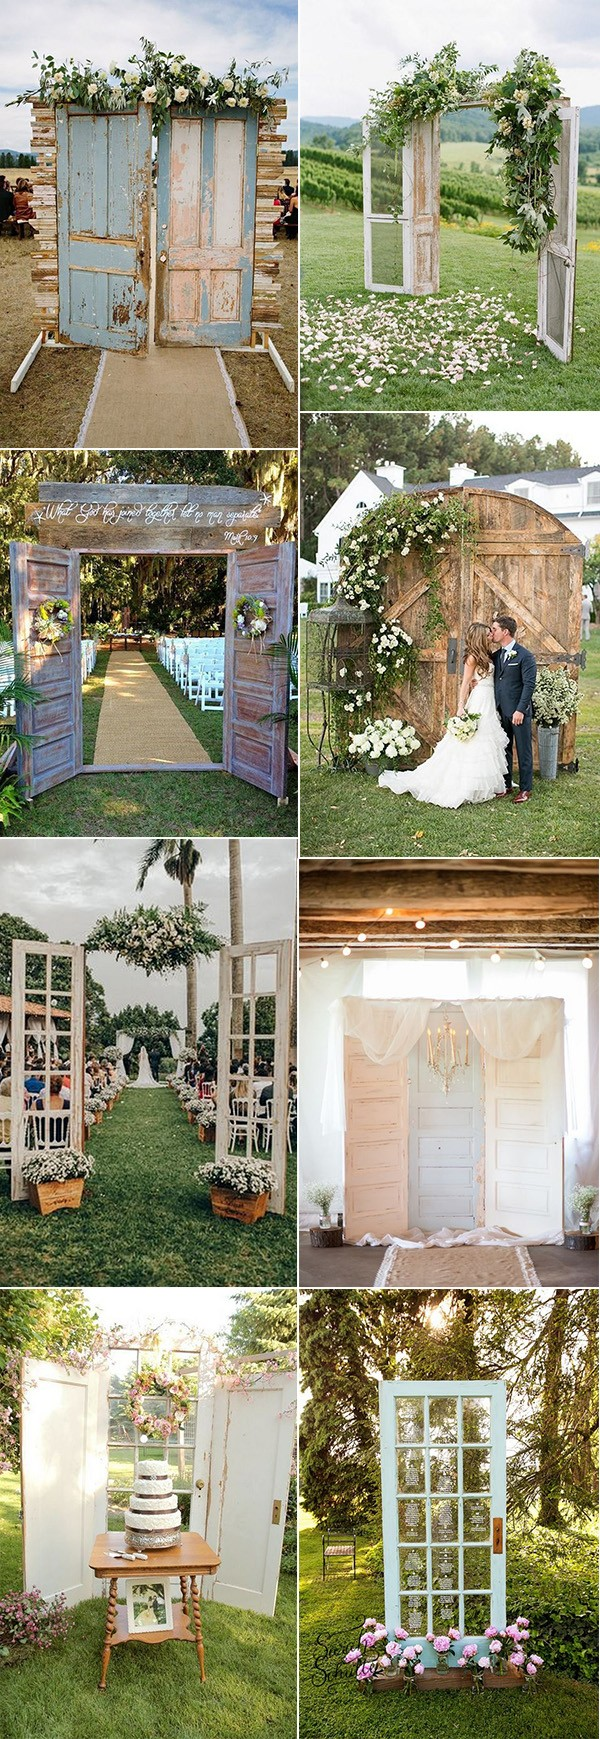 rustic outdoor wedding decoration ideas with vintage doors